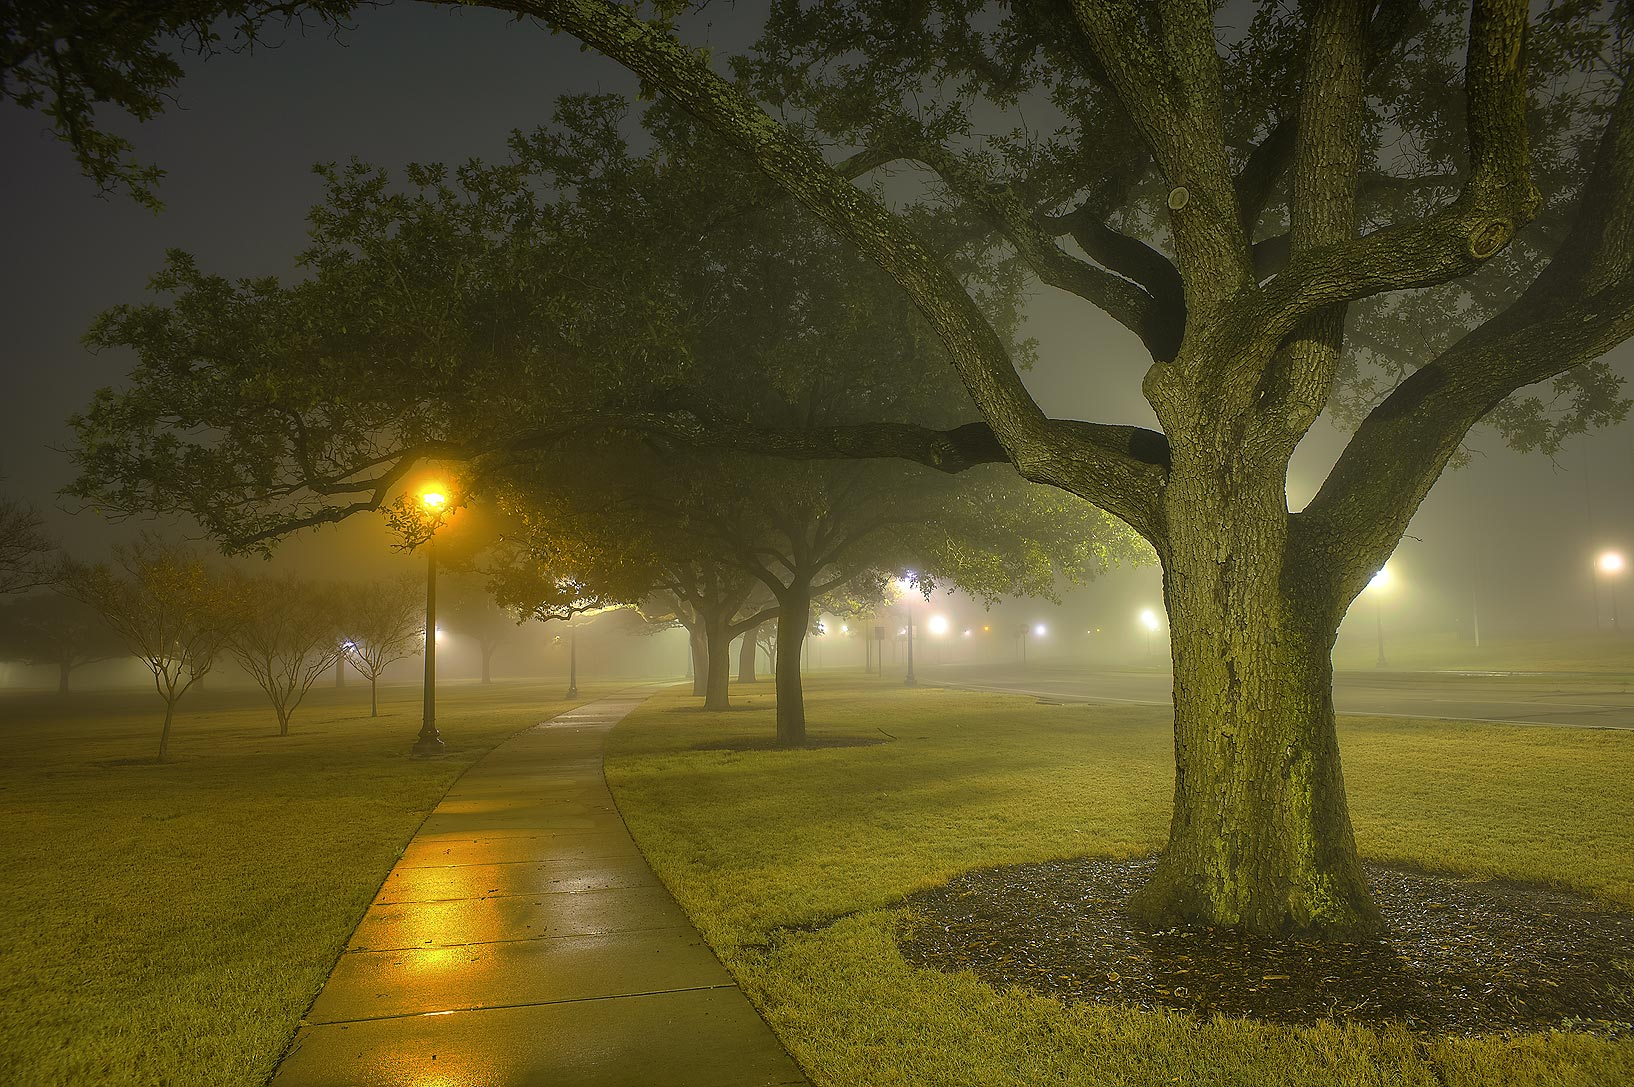 Oak alley of New Main Dr. on campus of Texas A&M University. College Station, Texas